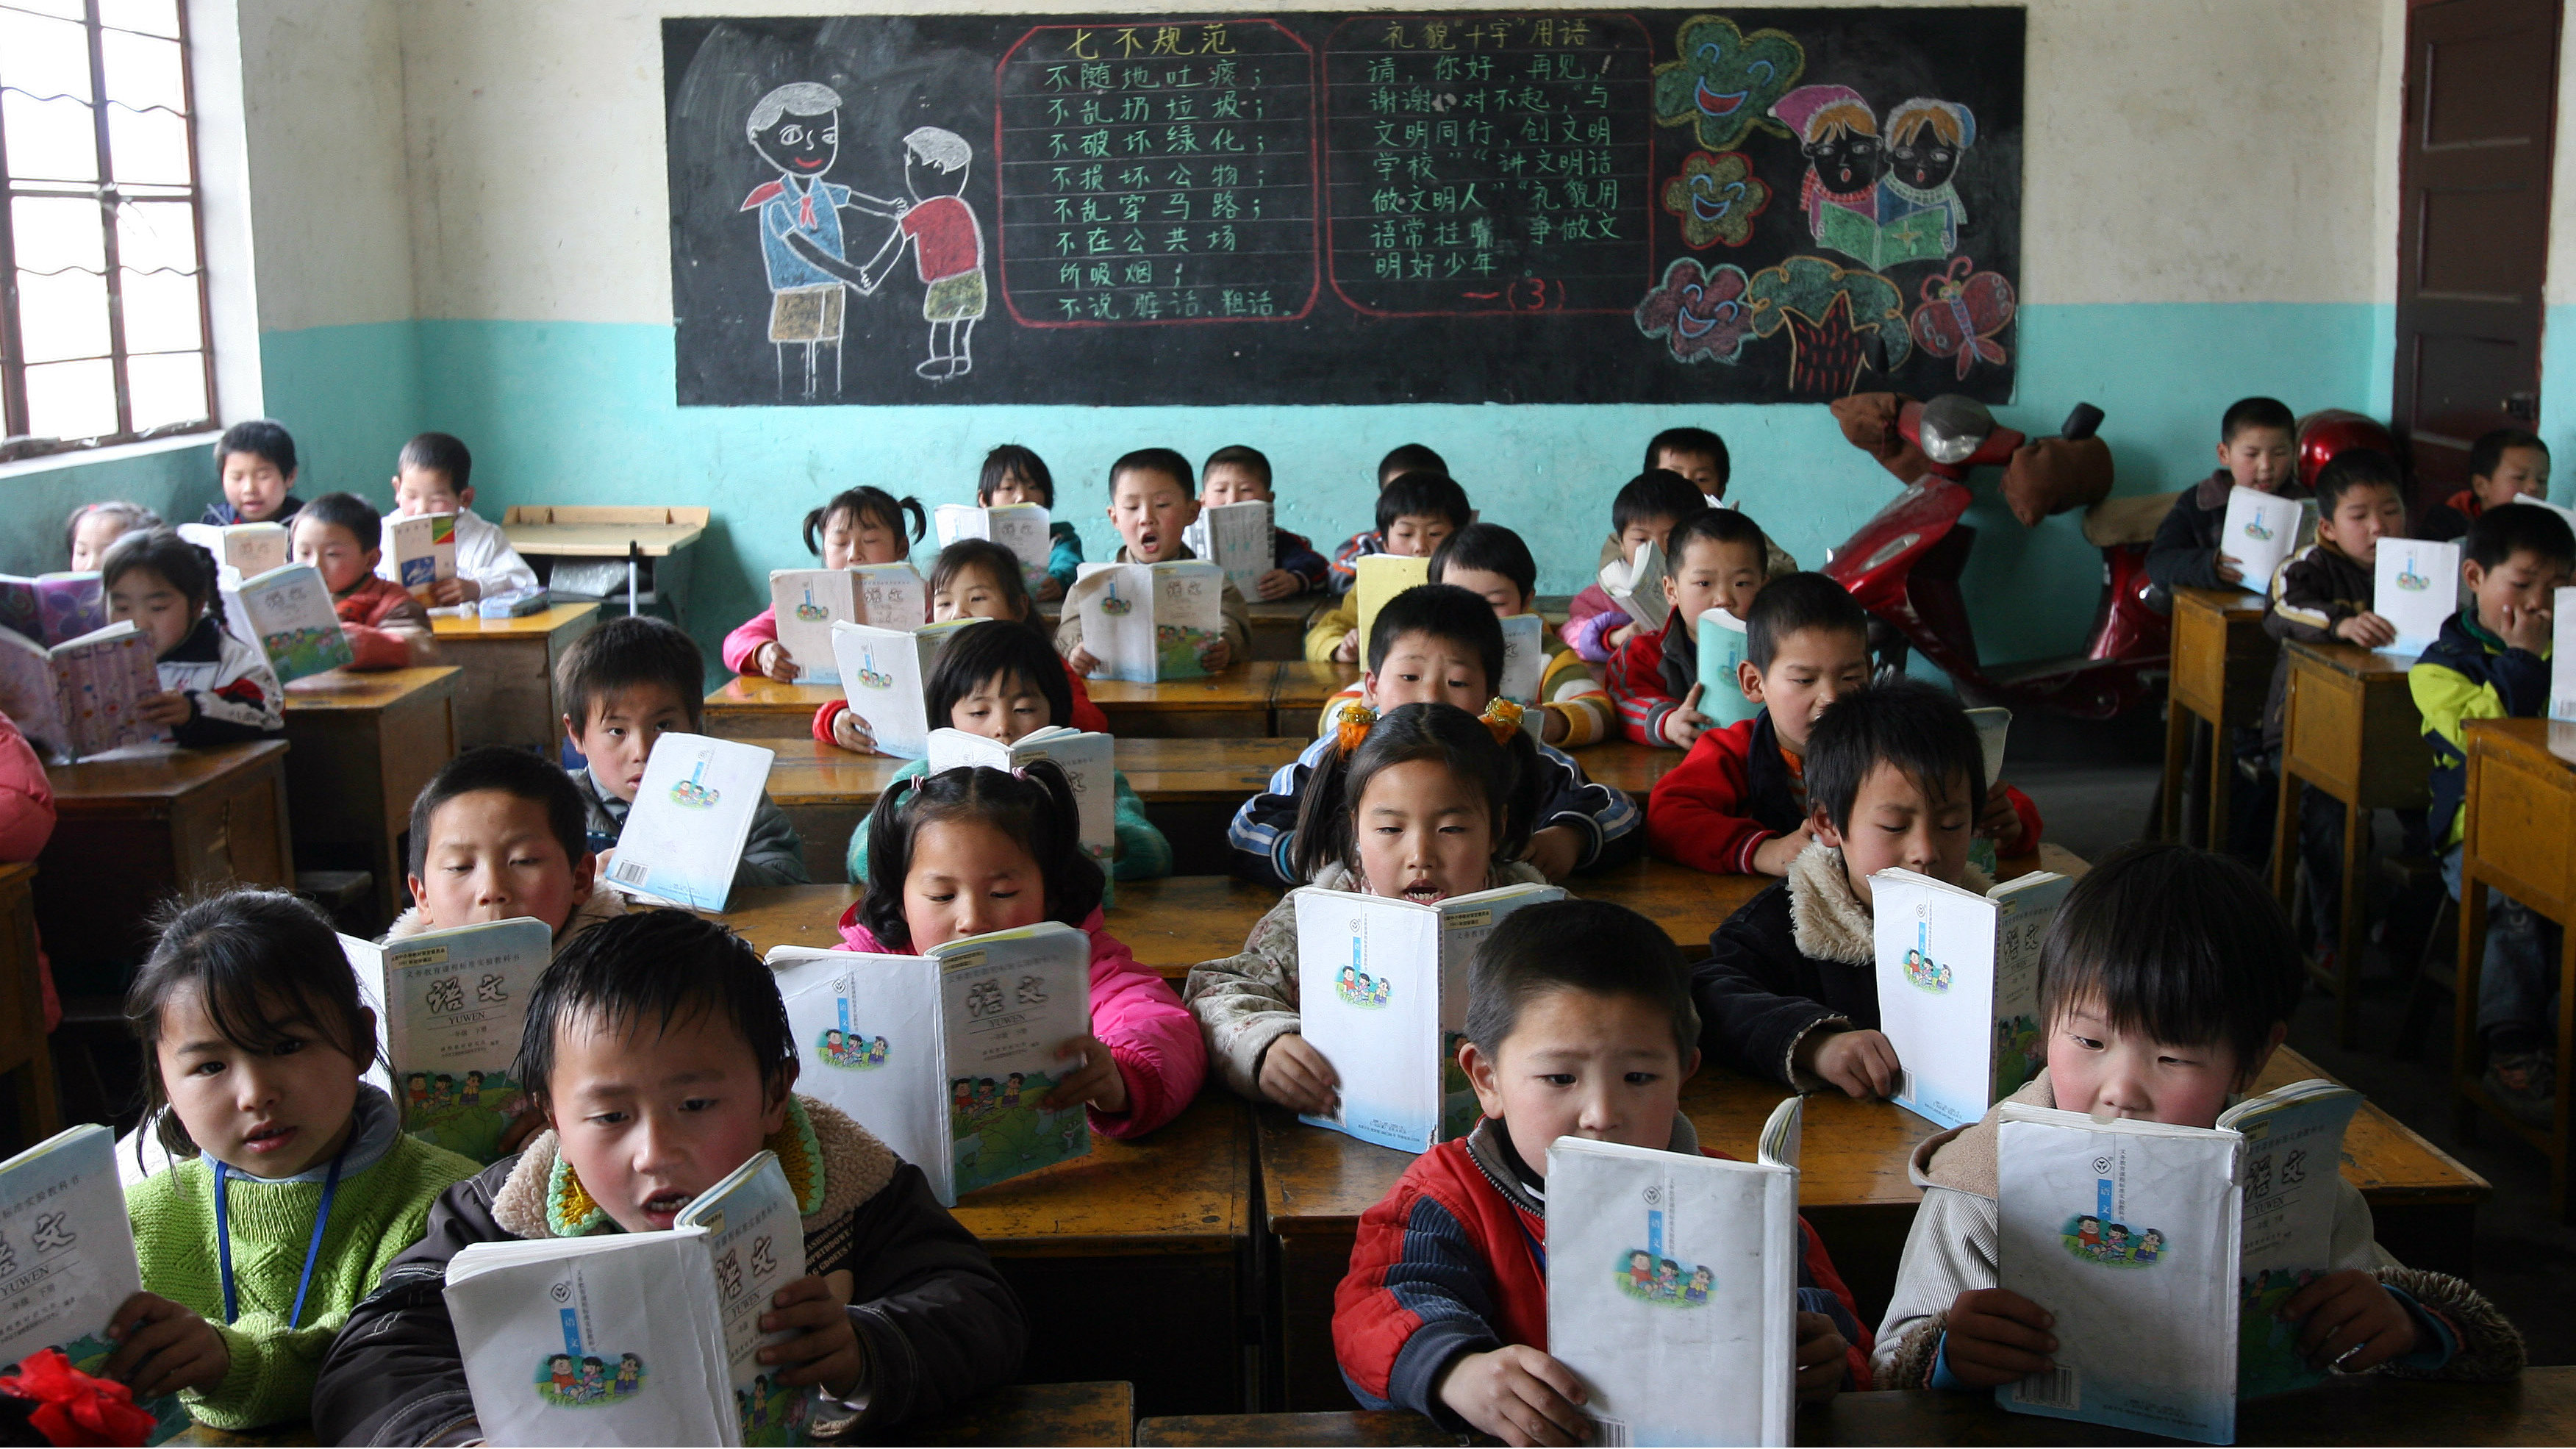 Chinese immigrant workers' children study in their classroom in a rural part of Shanghai